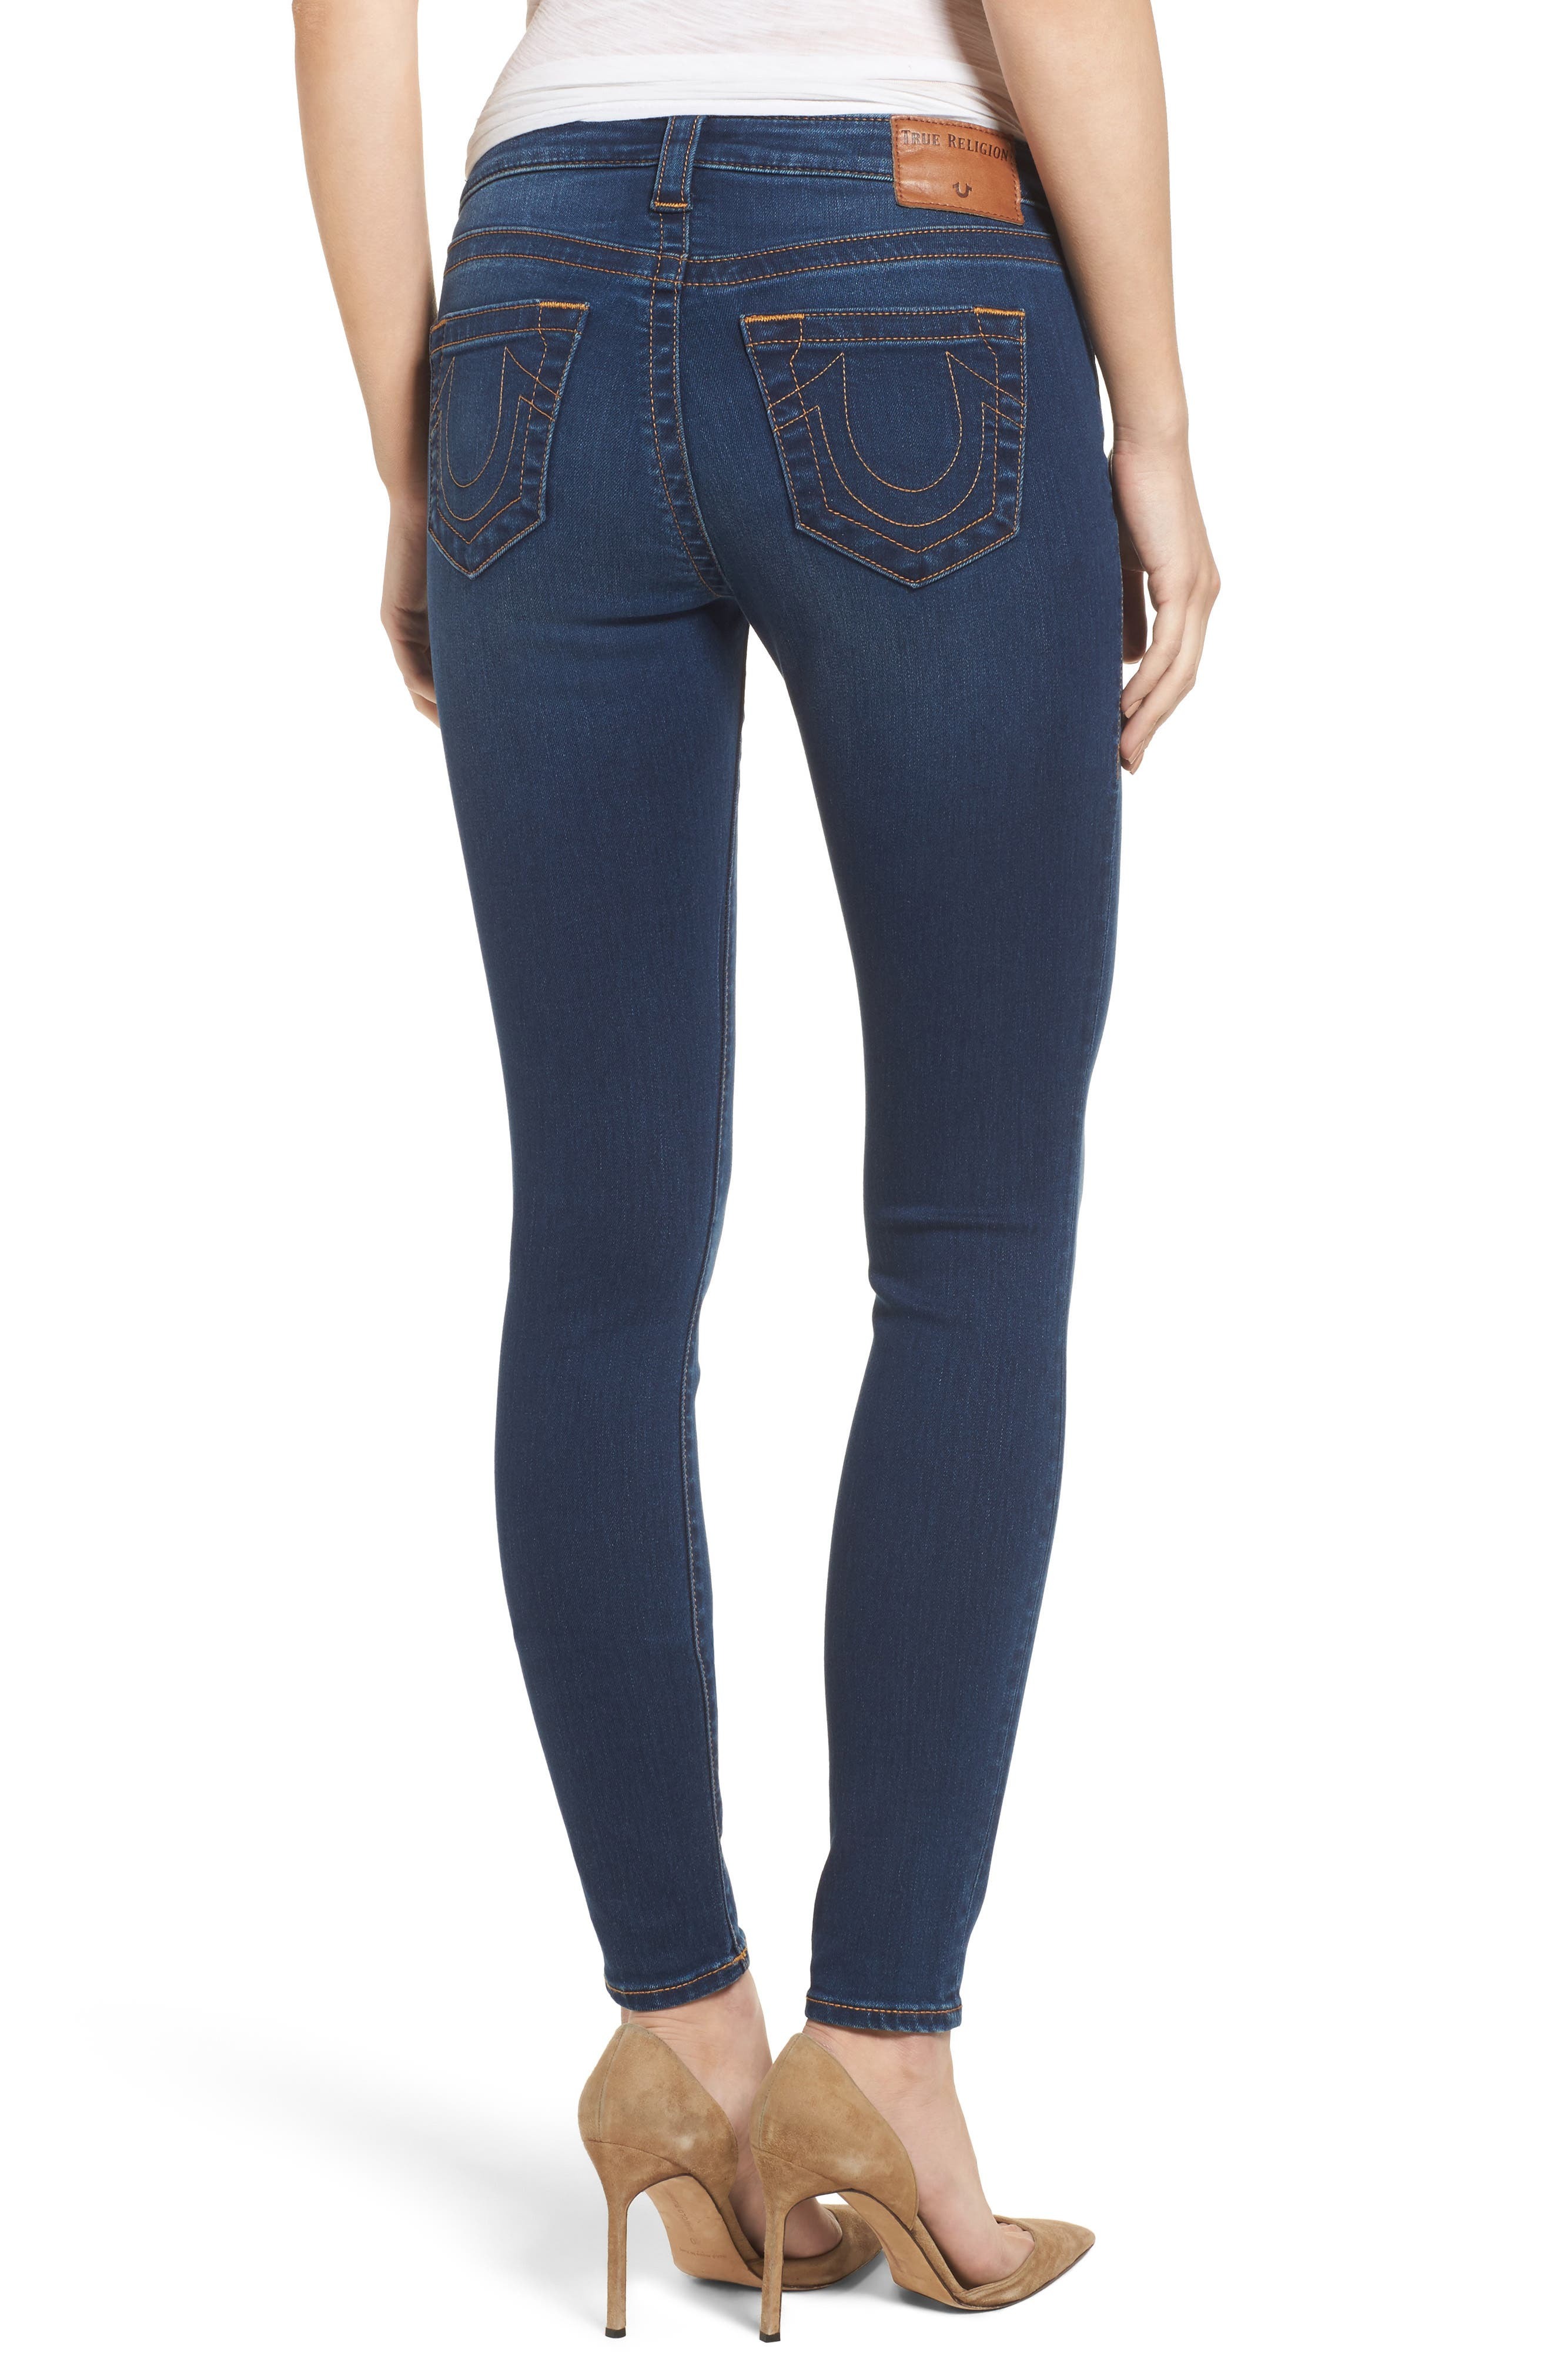 Halle Mid Rise Skinny Jeans,                             Alternate thumbnail 2, color,                             400